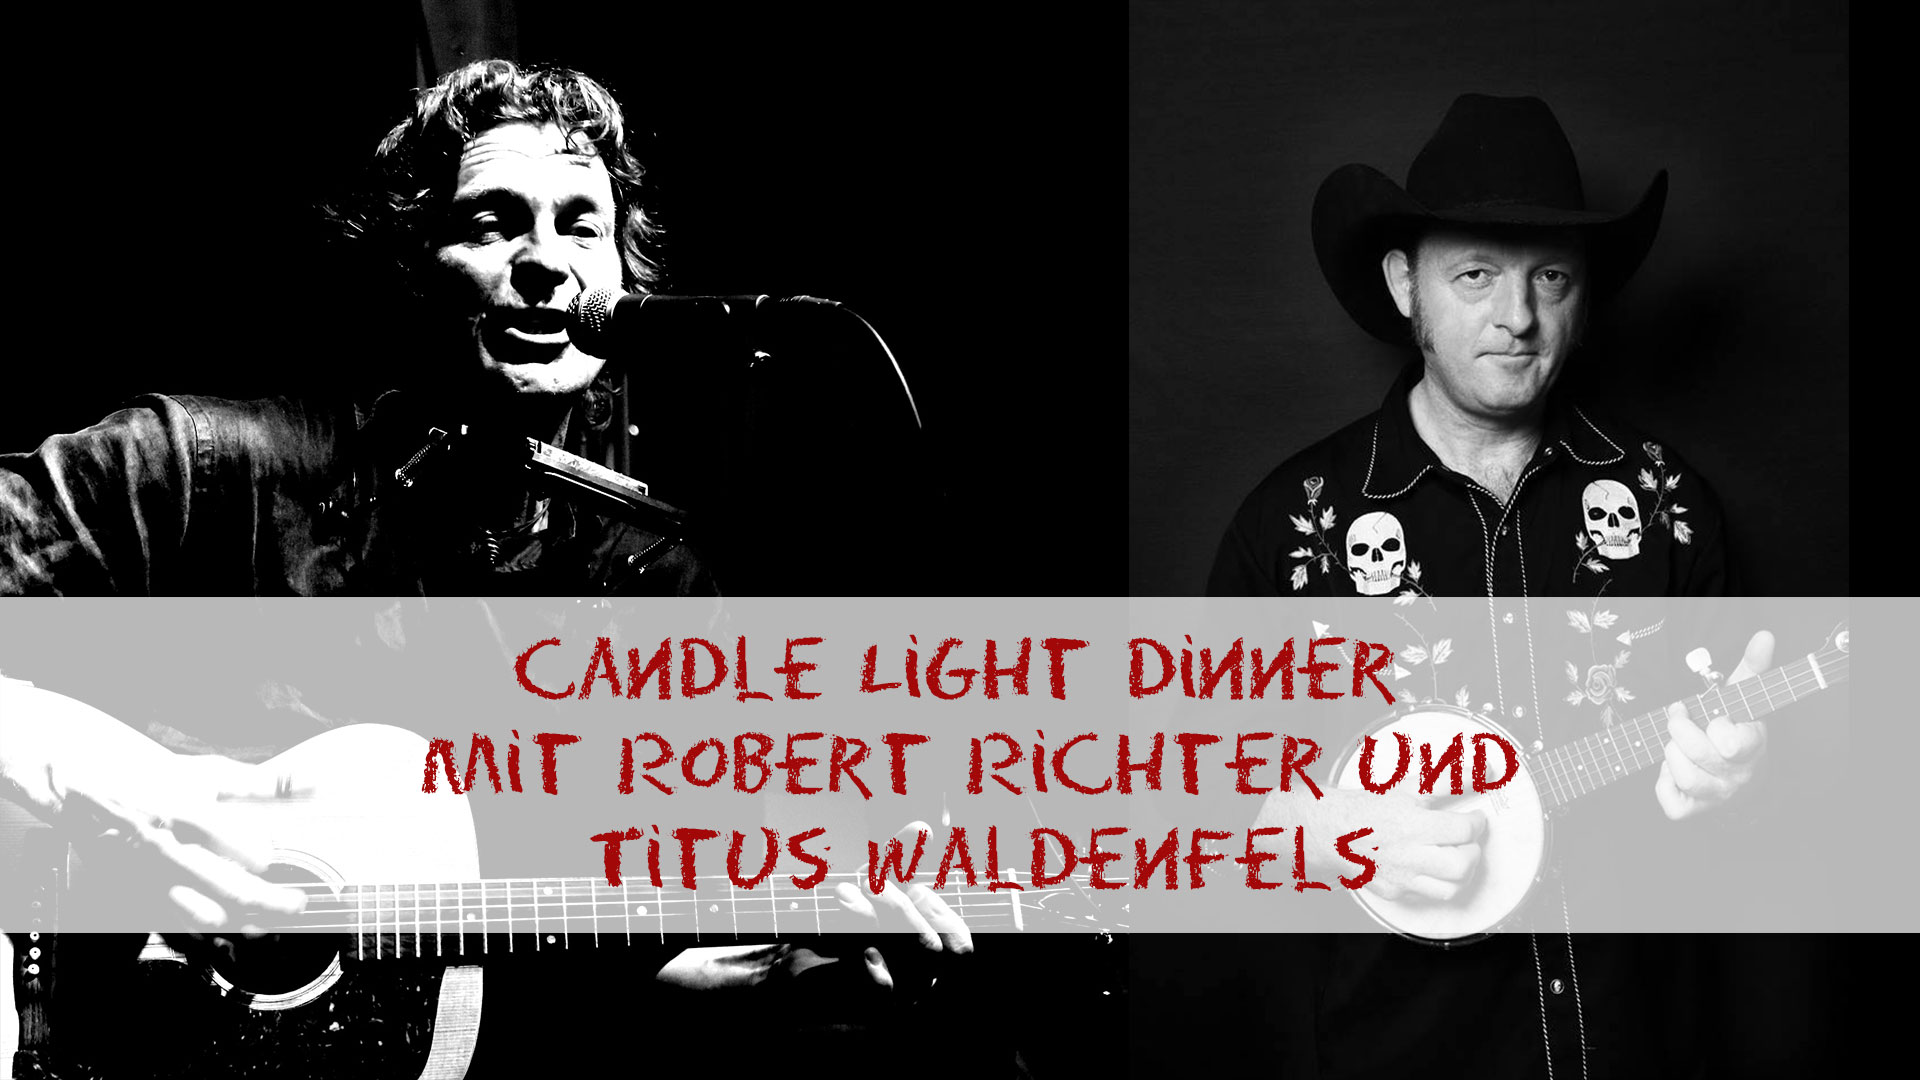 Richter & Waldenfels - Candle Light Dinner